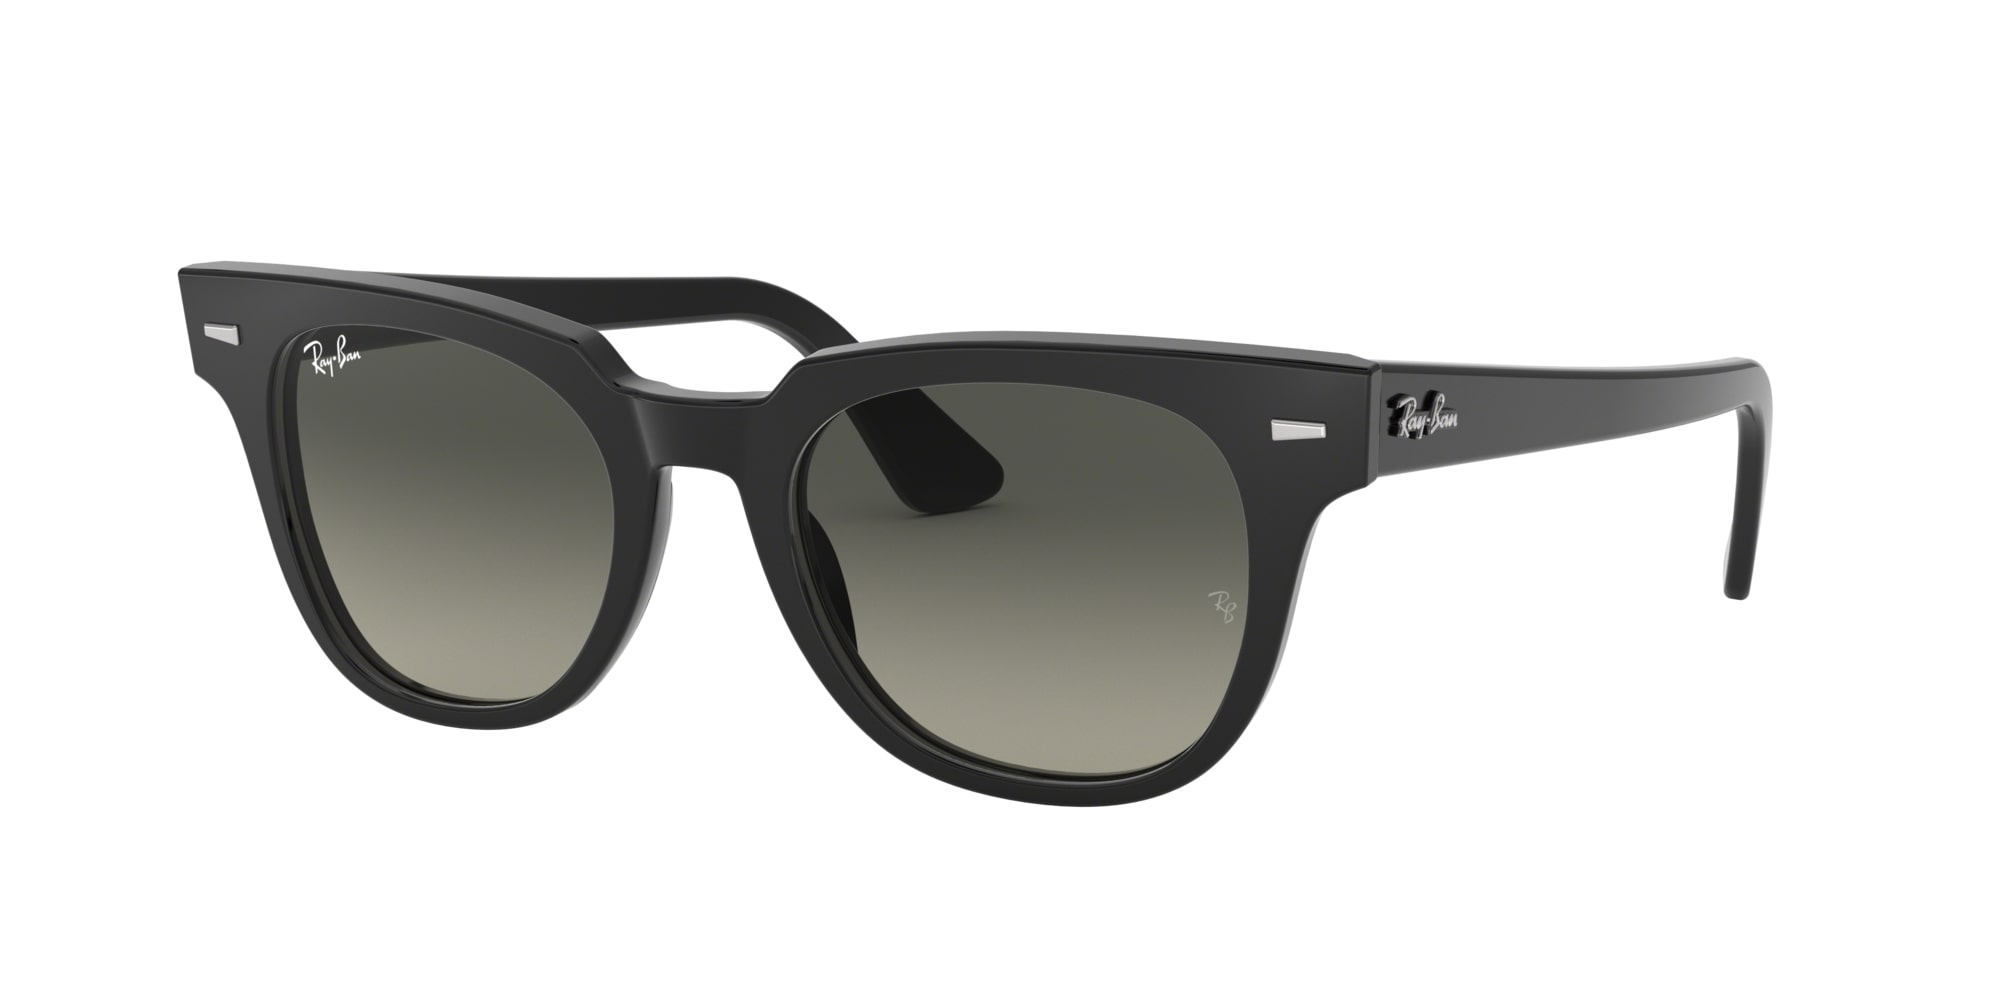 Ray Ban Meteor Classic solbriller